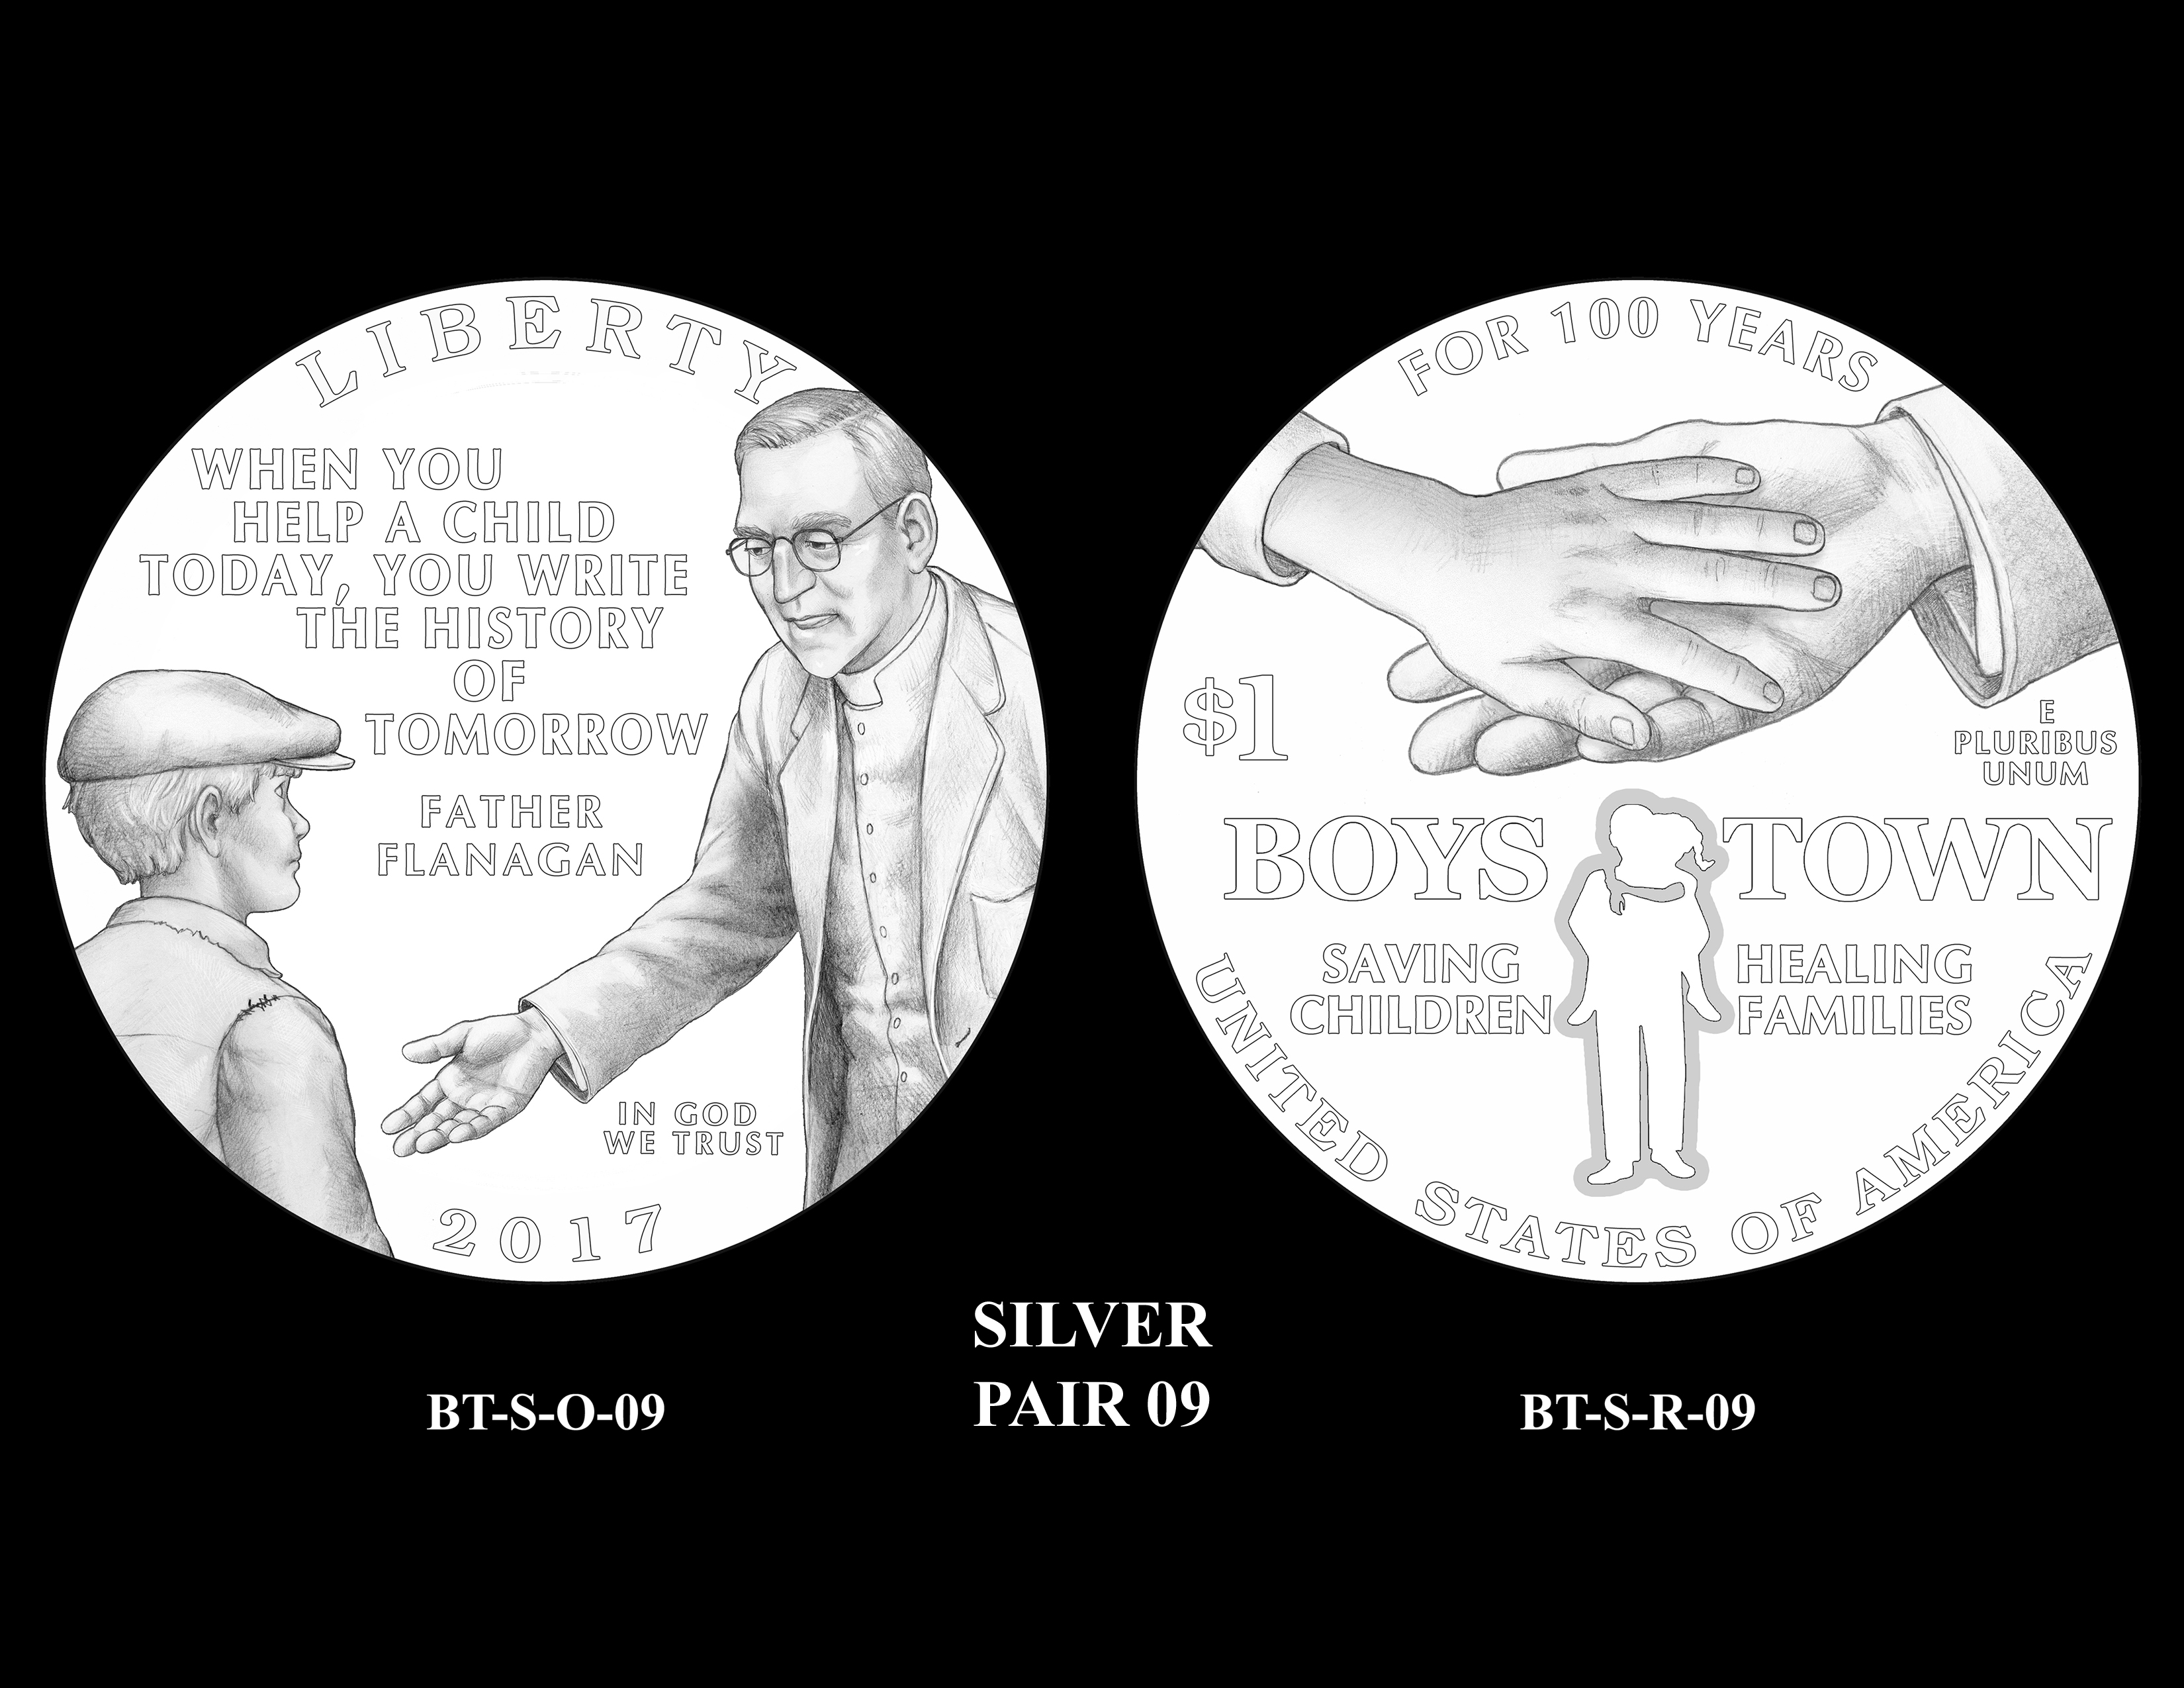 Silver-Pair-09 -- 2017 Boystown Centennial Commemorative Coin  Program